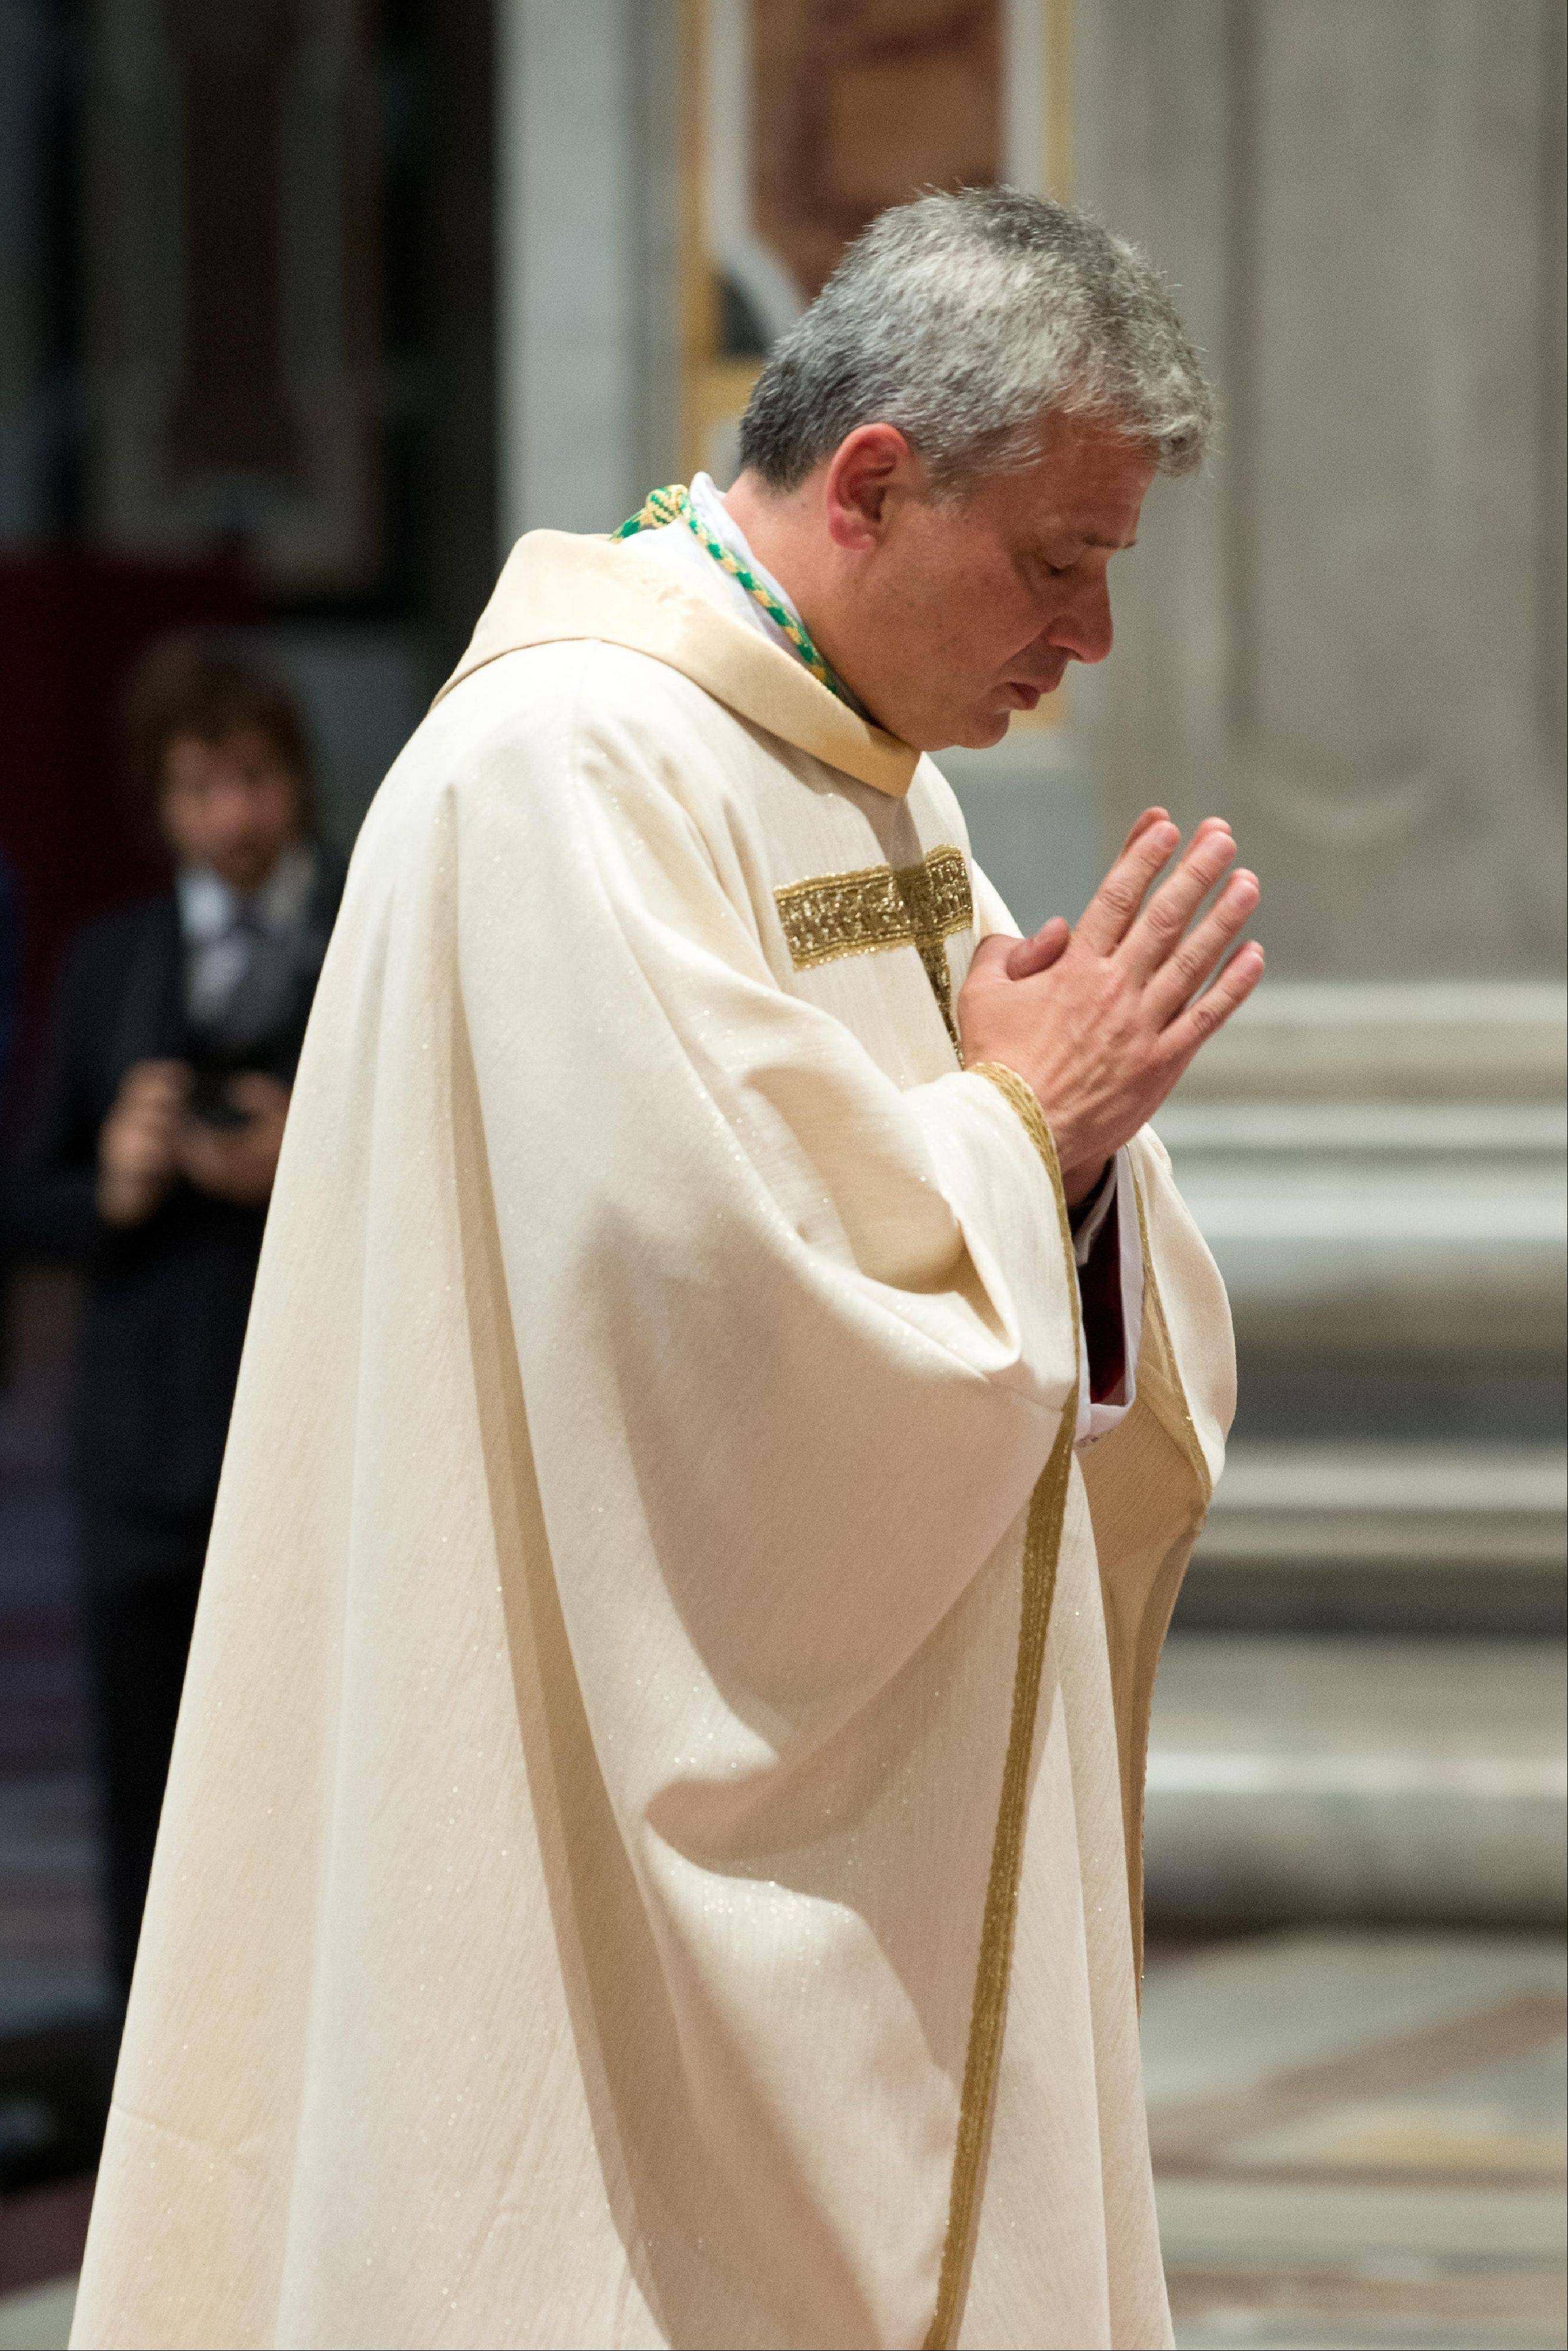 Vatican Almoner, Archbishop Konrad Krajewski, attends the ceremony for his episcopal ordination.